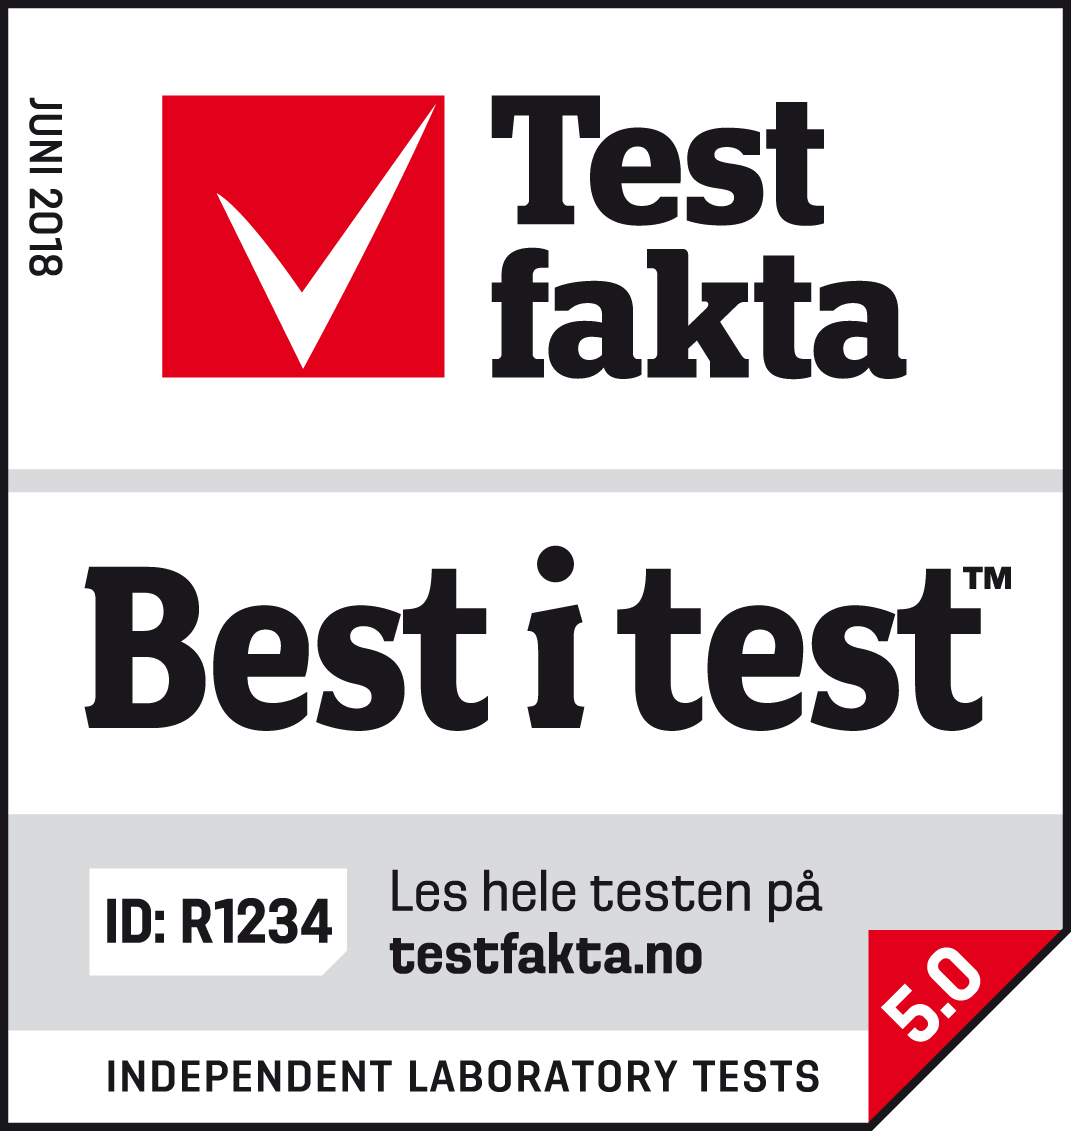 Best i test